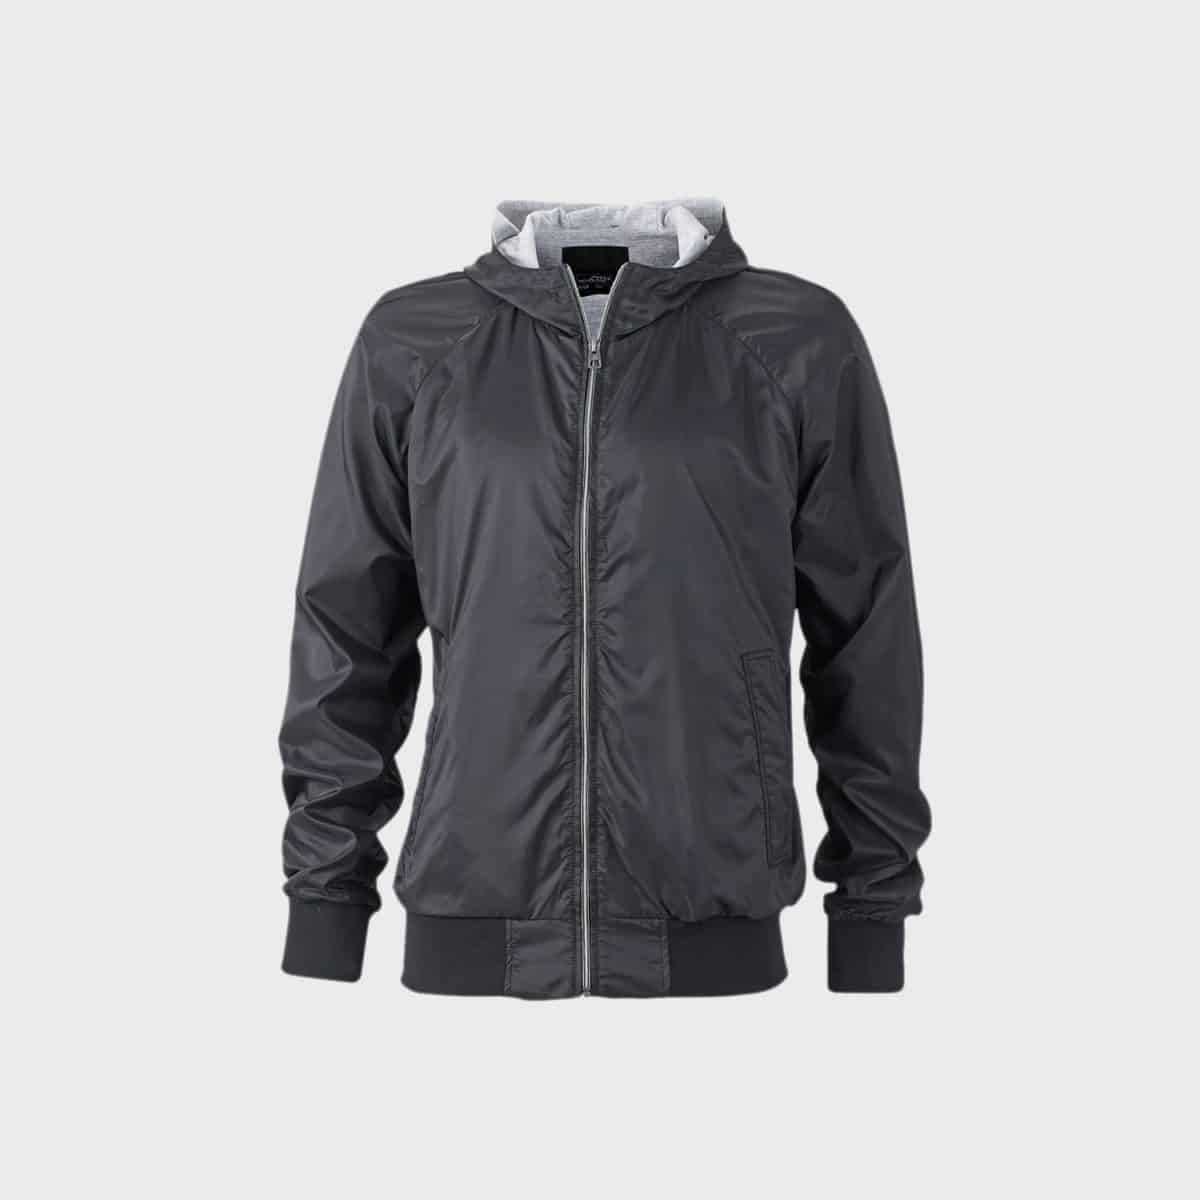 sport-jacket-herren-black-kaufen-besticken_stickmanufaktur